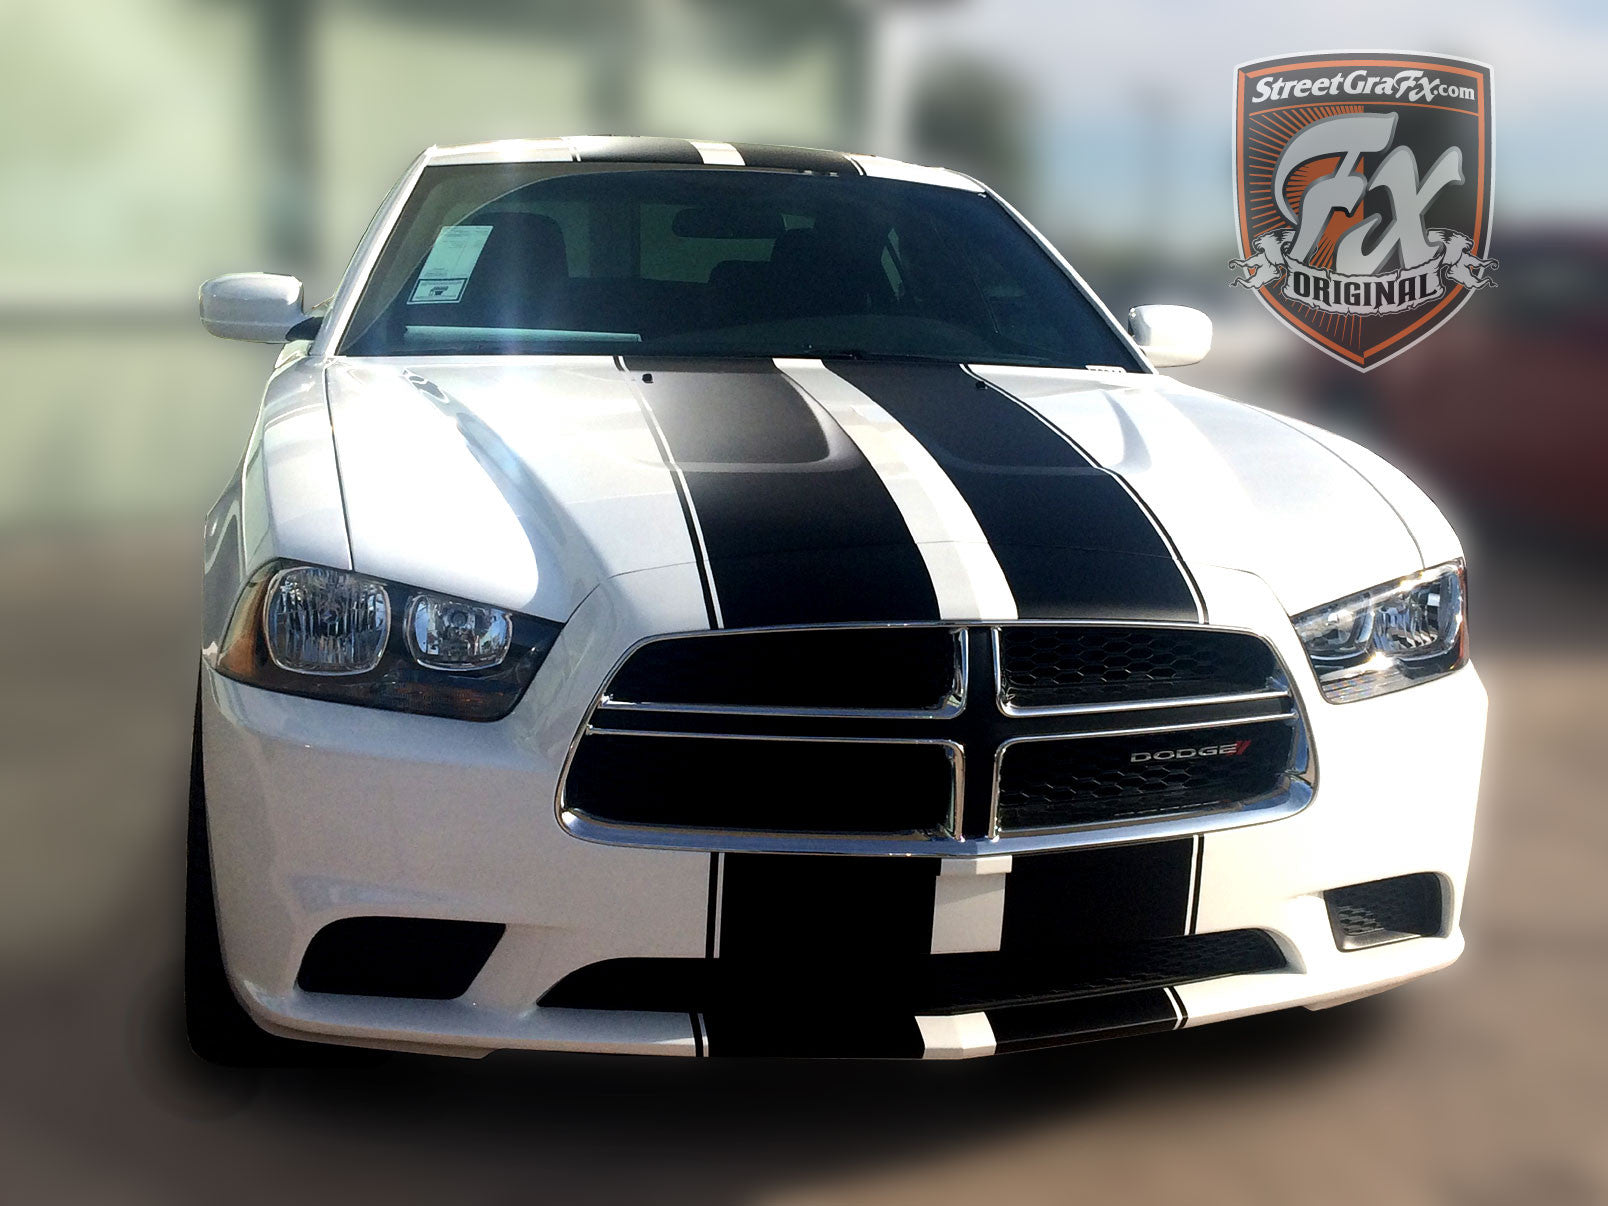 Dodge Charger Stripes Racing Stripes & R T Graphic kit – streetgrafx